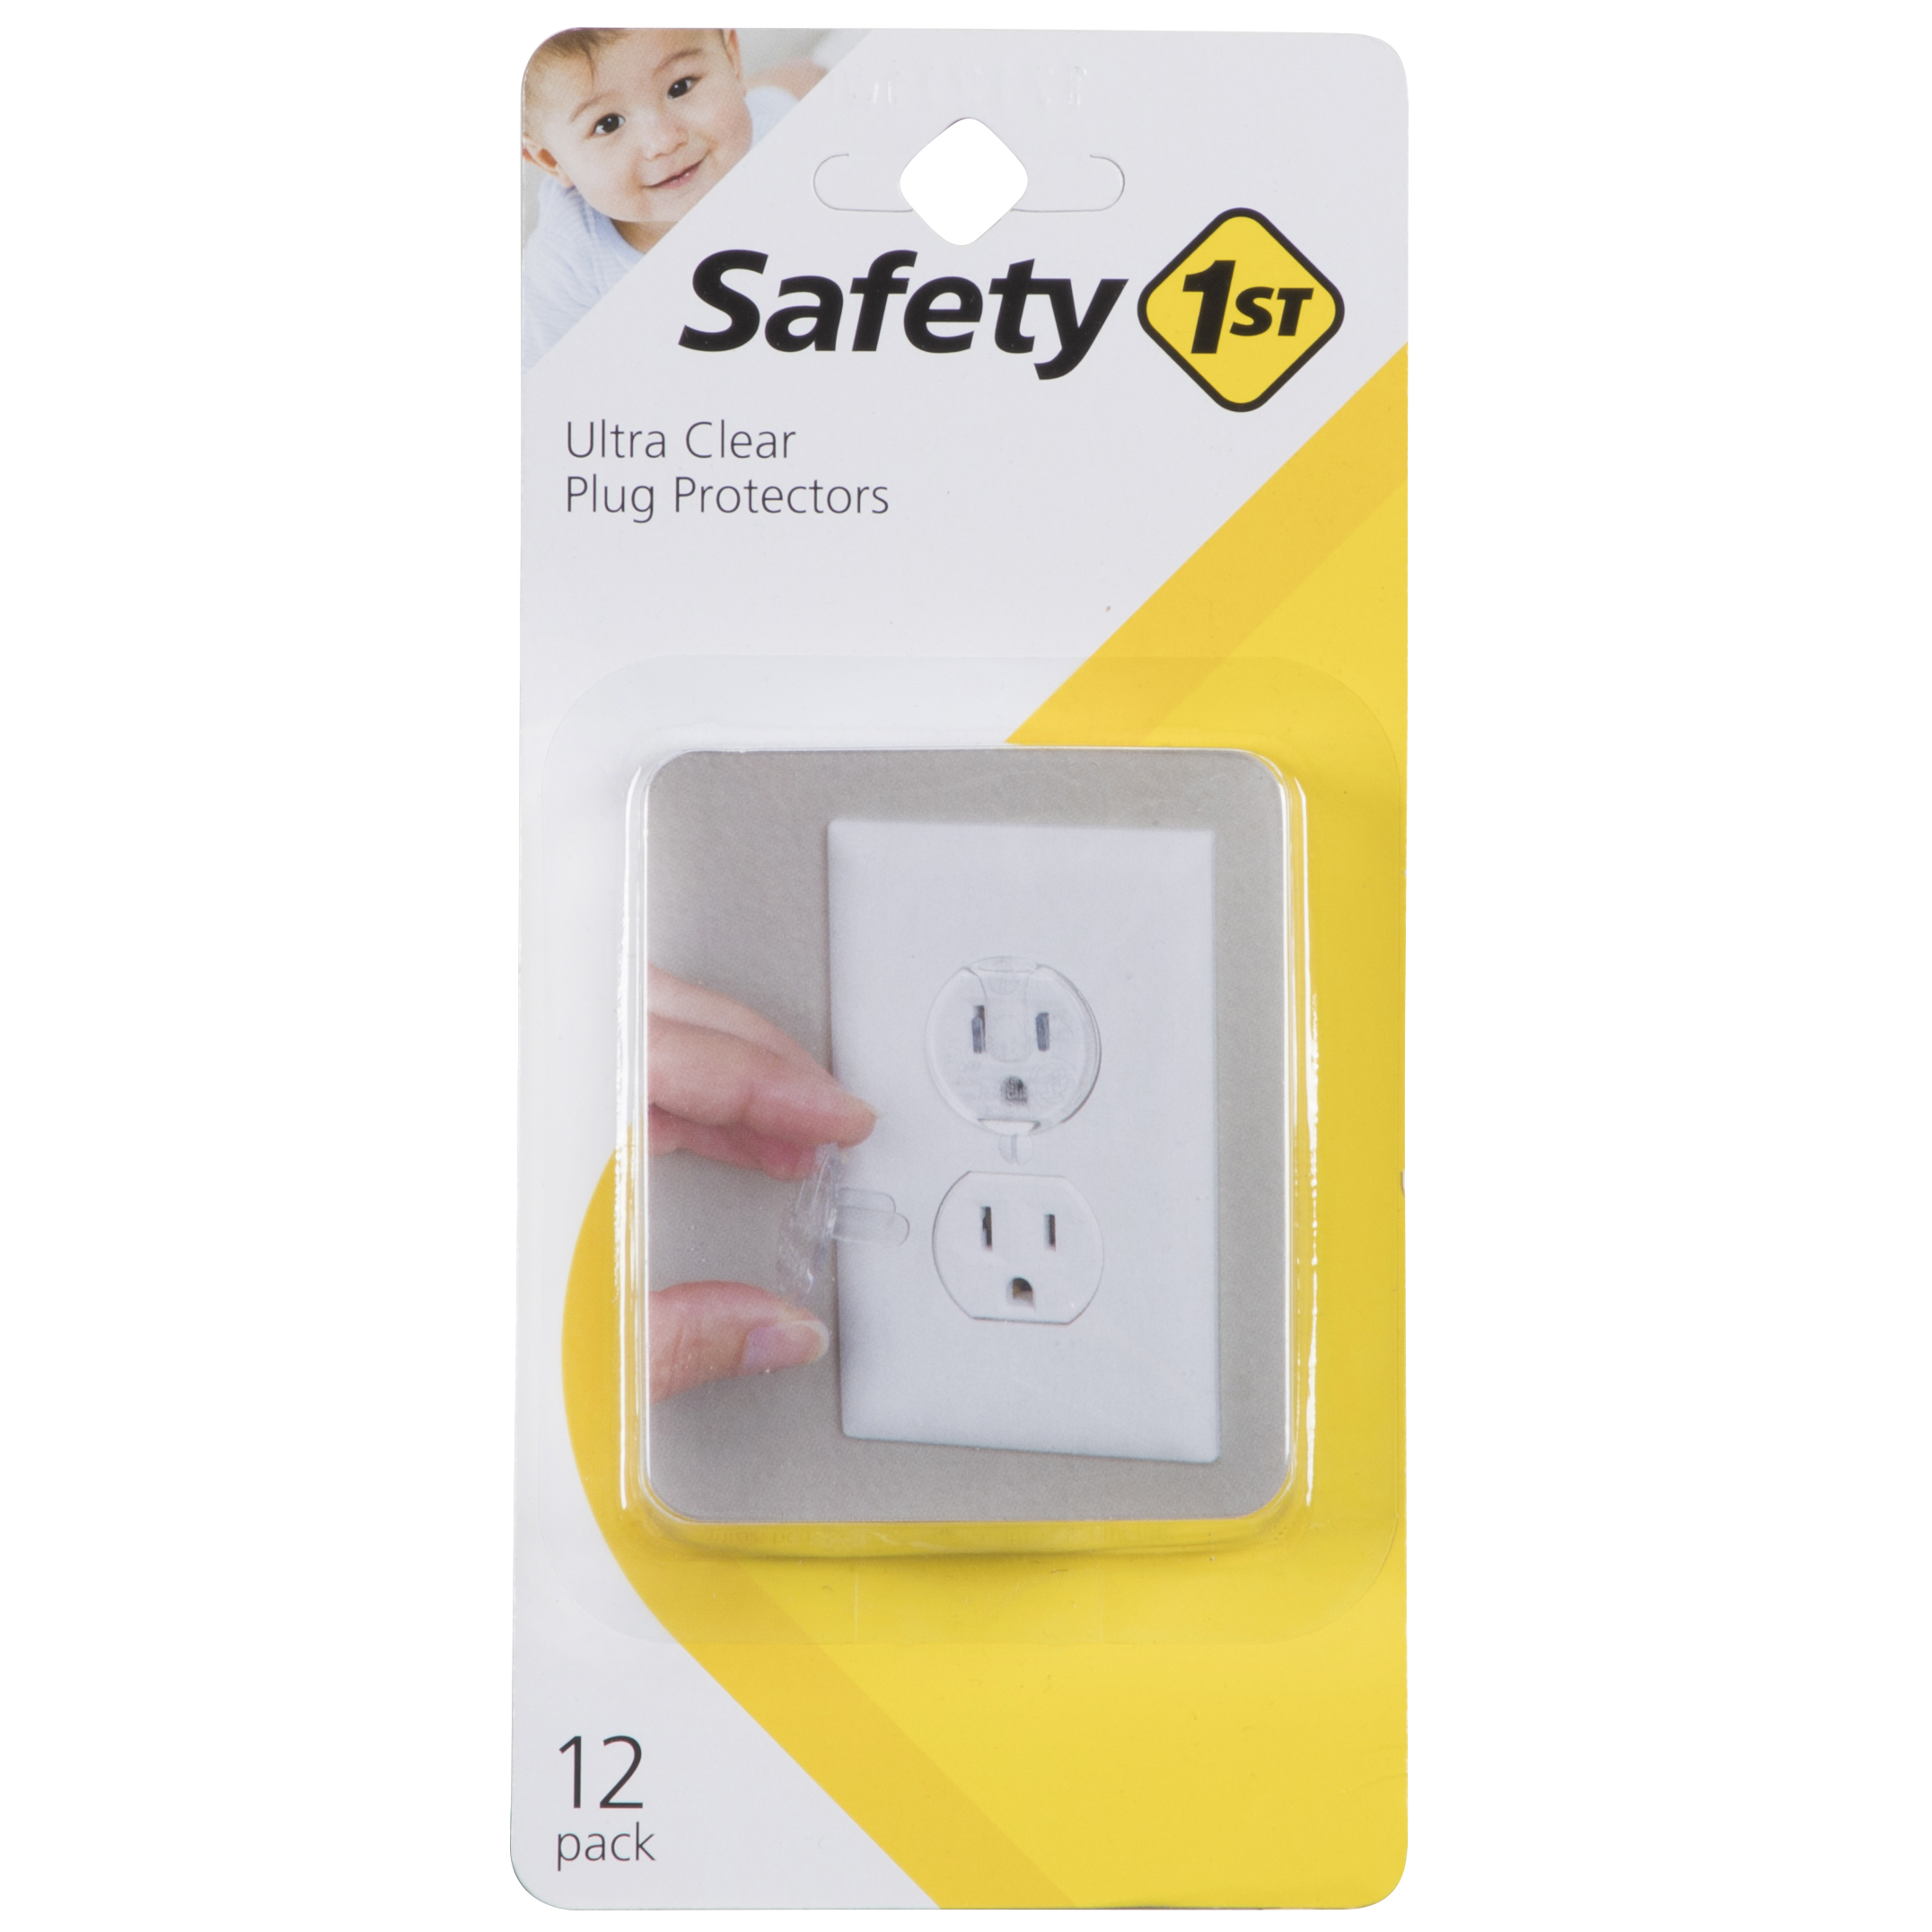 Safety 1st Ultra Clear Plug Protectors, Clear